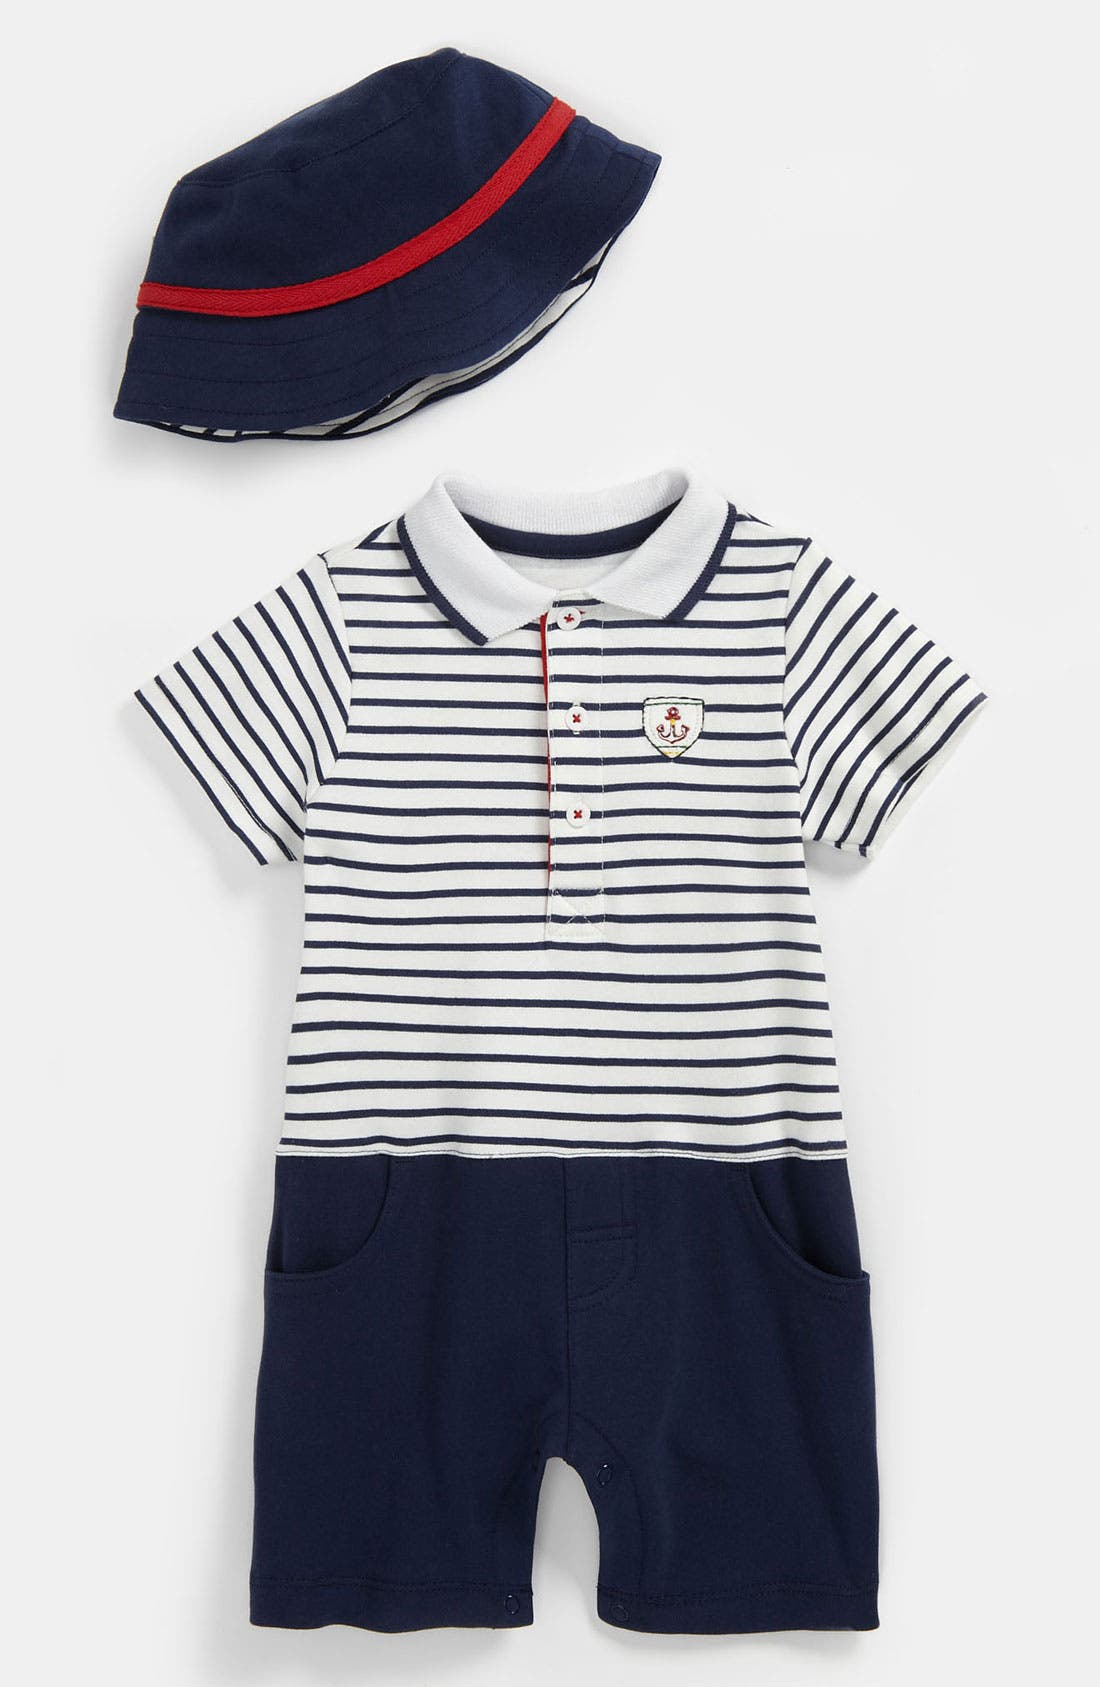 Alternate Image 1 Selected - Little Me 'Drop Anchor Sailing' Romper & Hat (Baby)